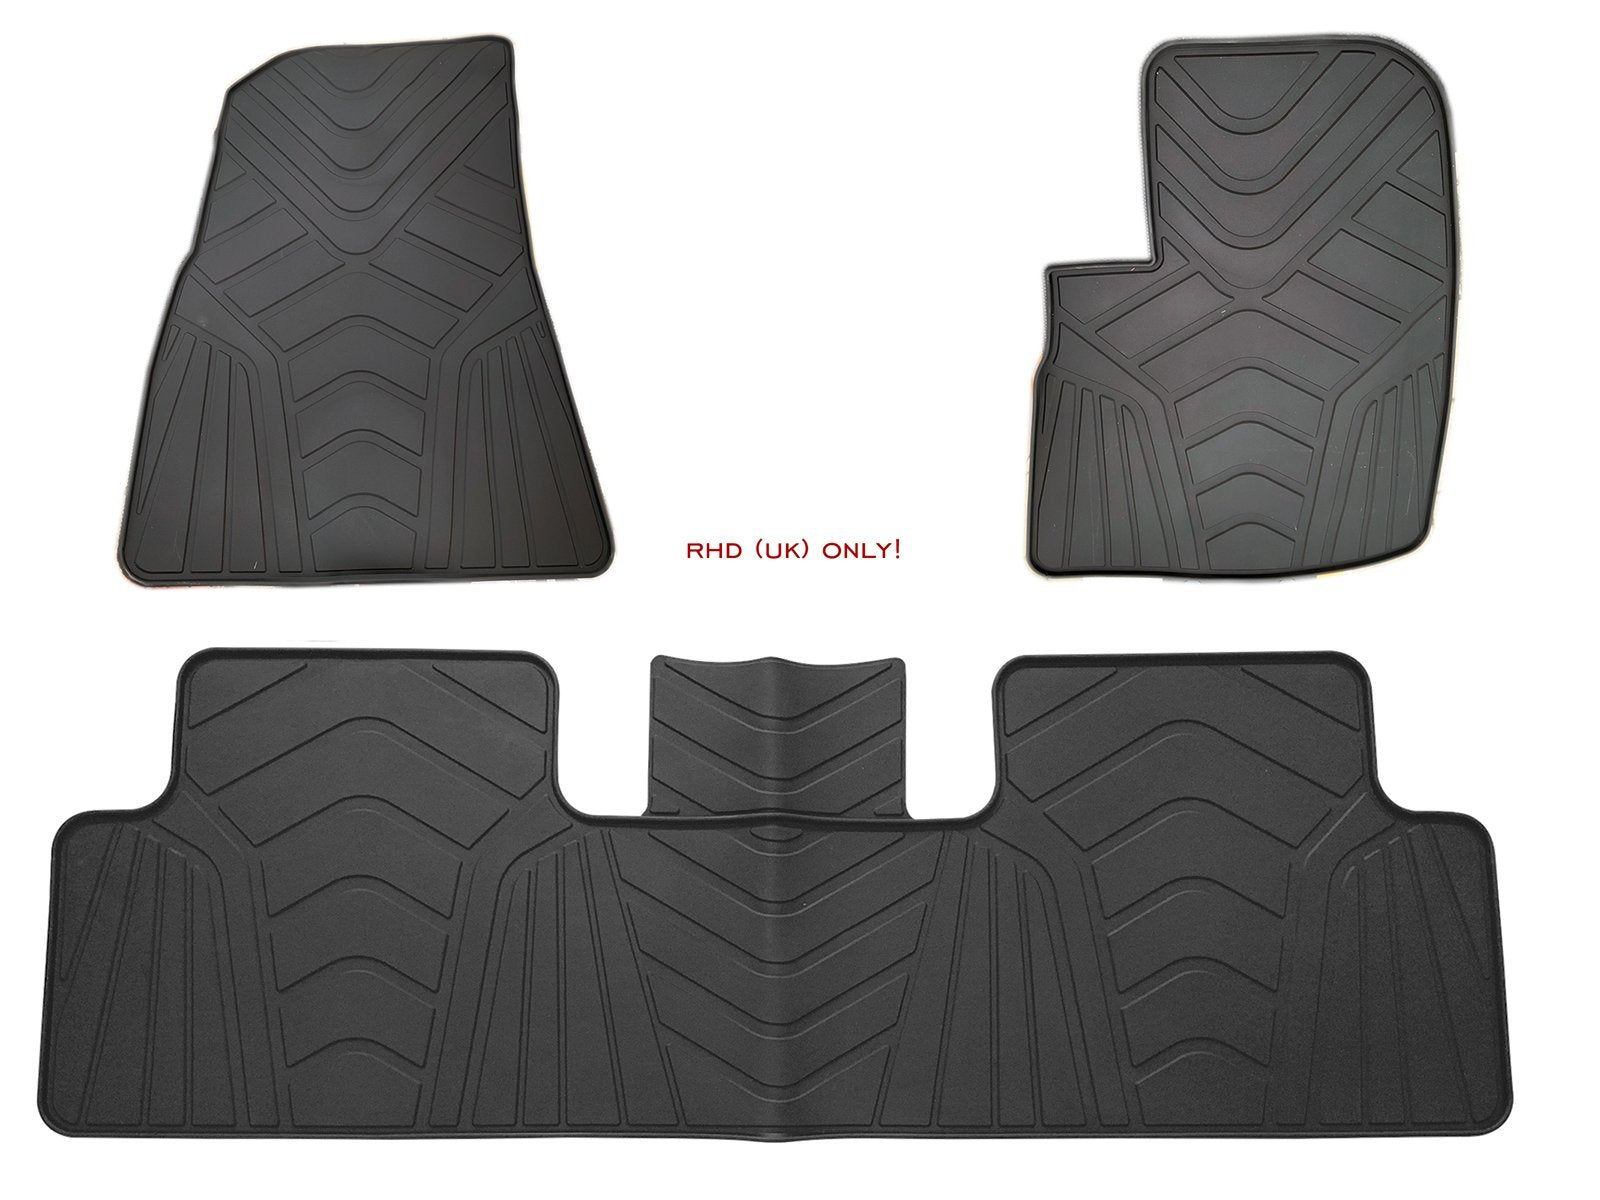 RHD UK only_Model 3: All-weather Interior Floor Mats (3 pcs, Synthetic Latex Rubber) - Torque Alliance